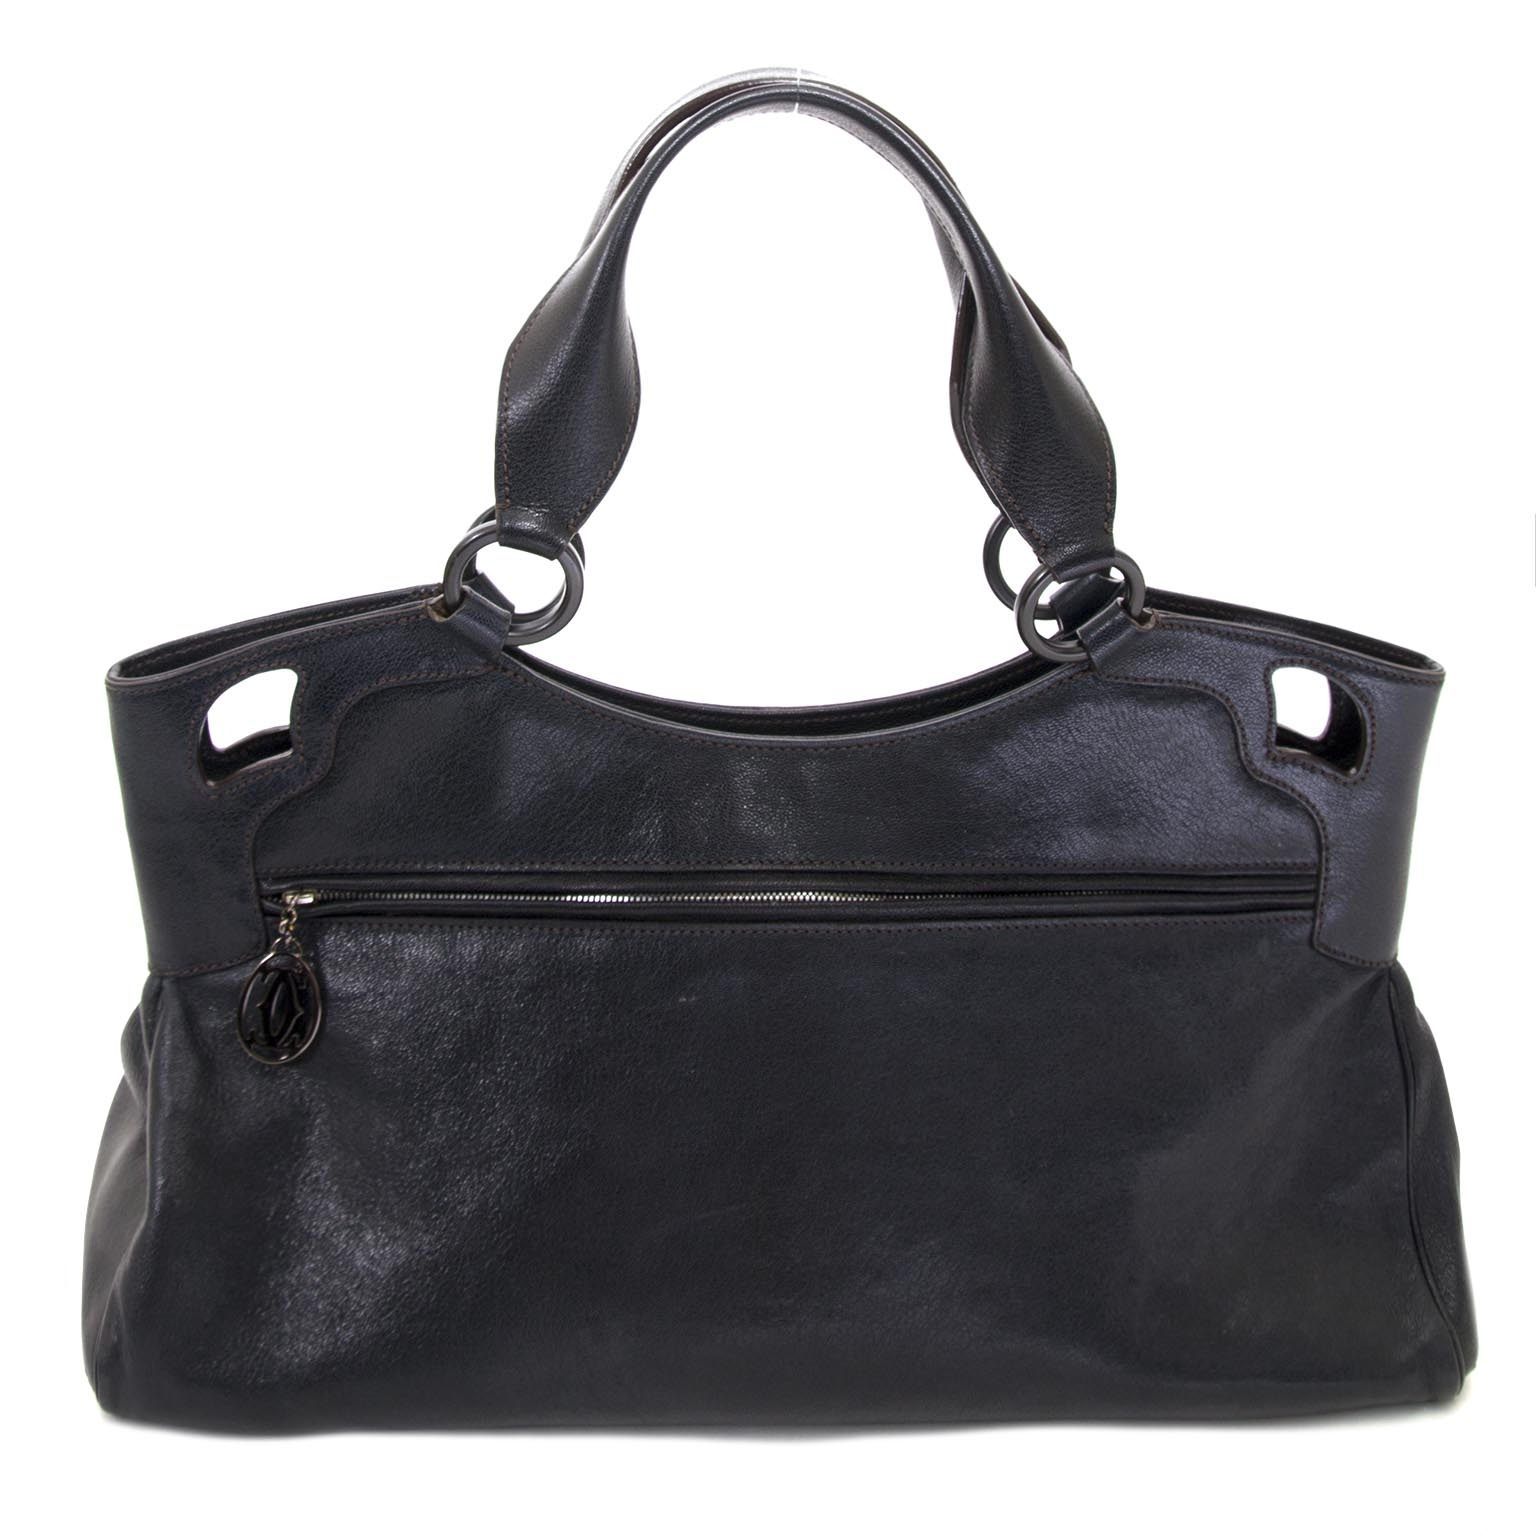 ... buy Cartier Blue Leather Marcello Handbag at labellov for the best price 65f56e4a6ca51